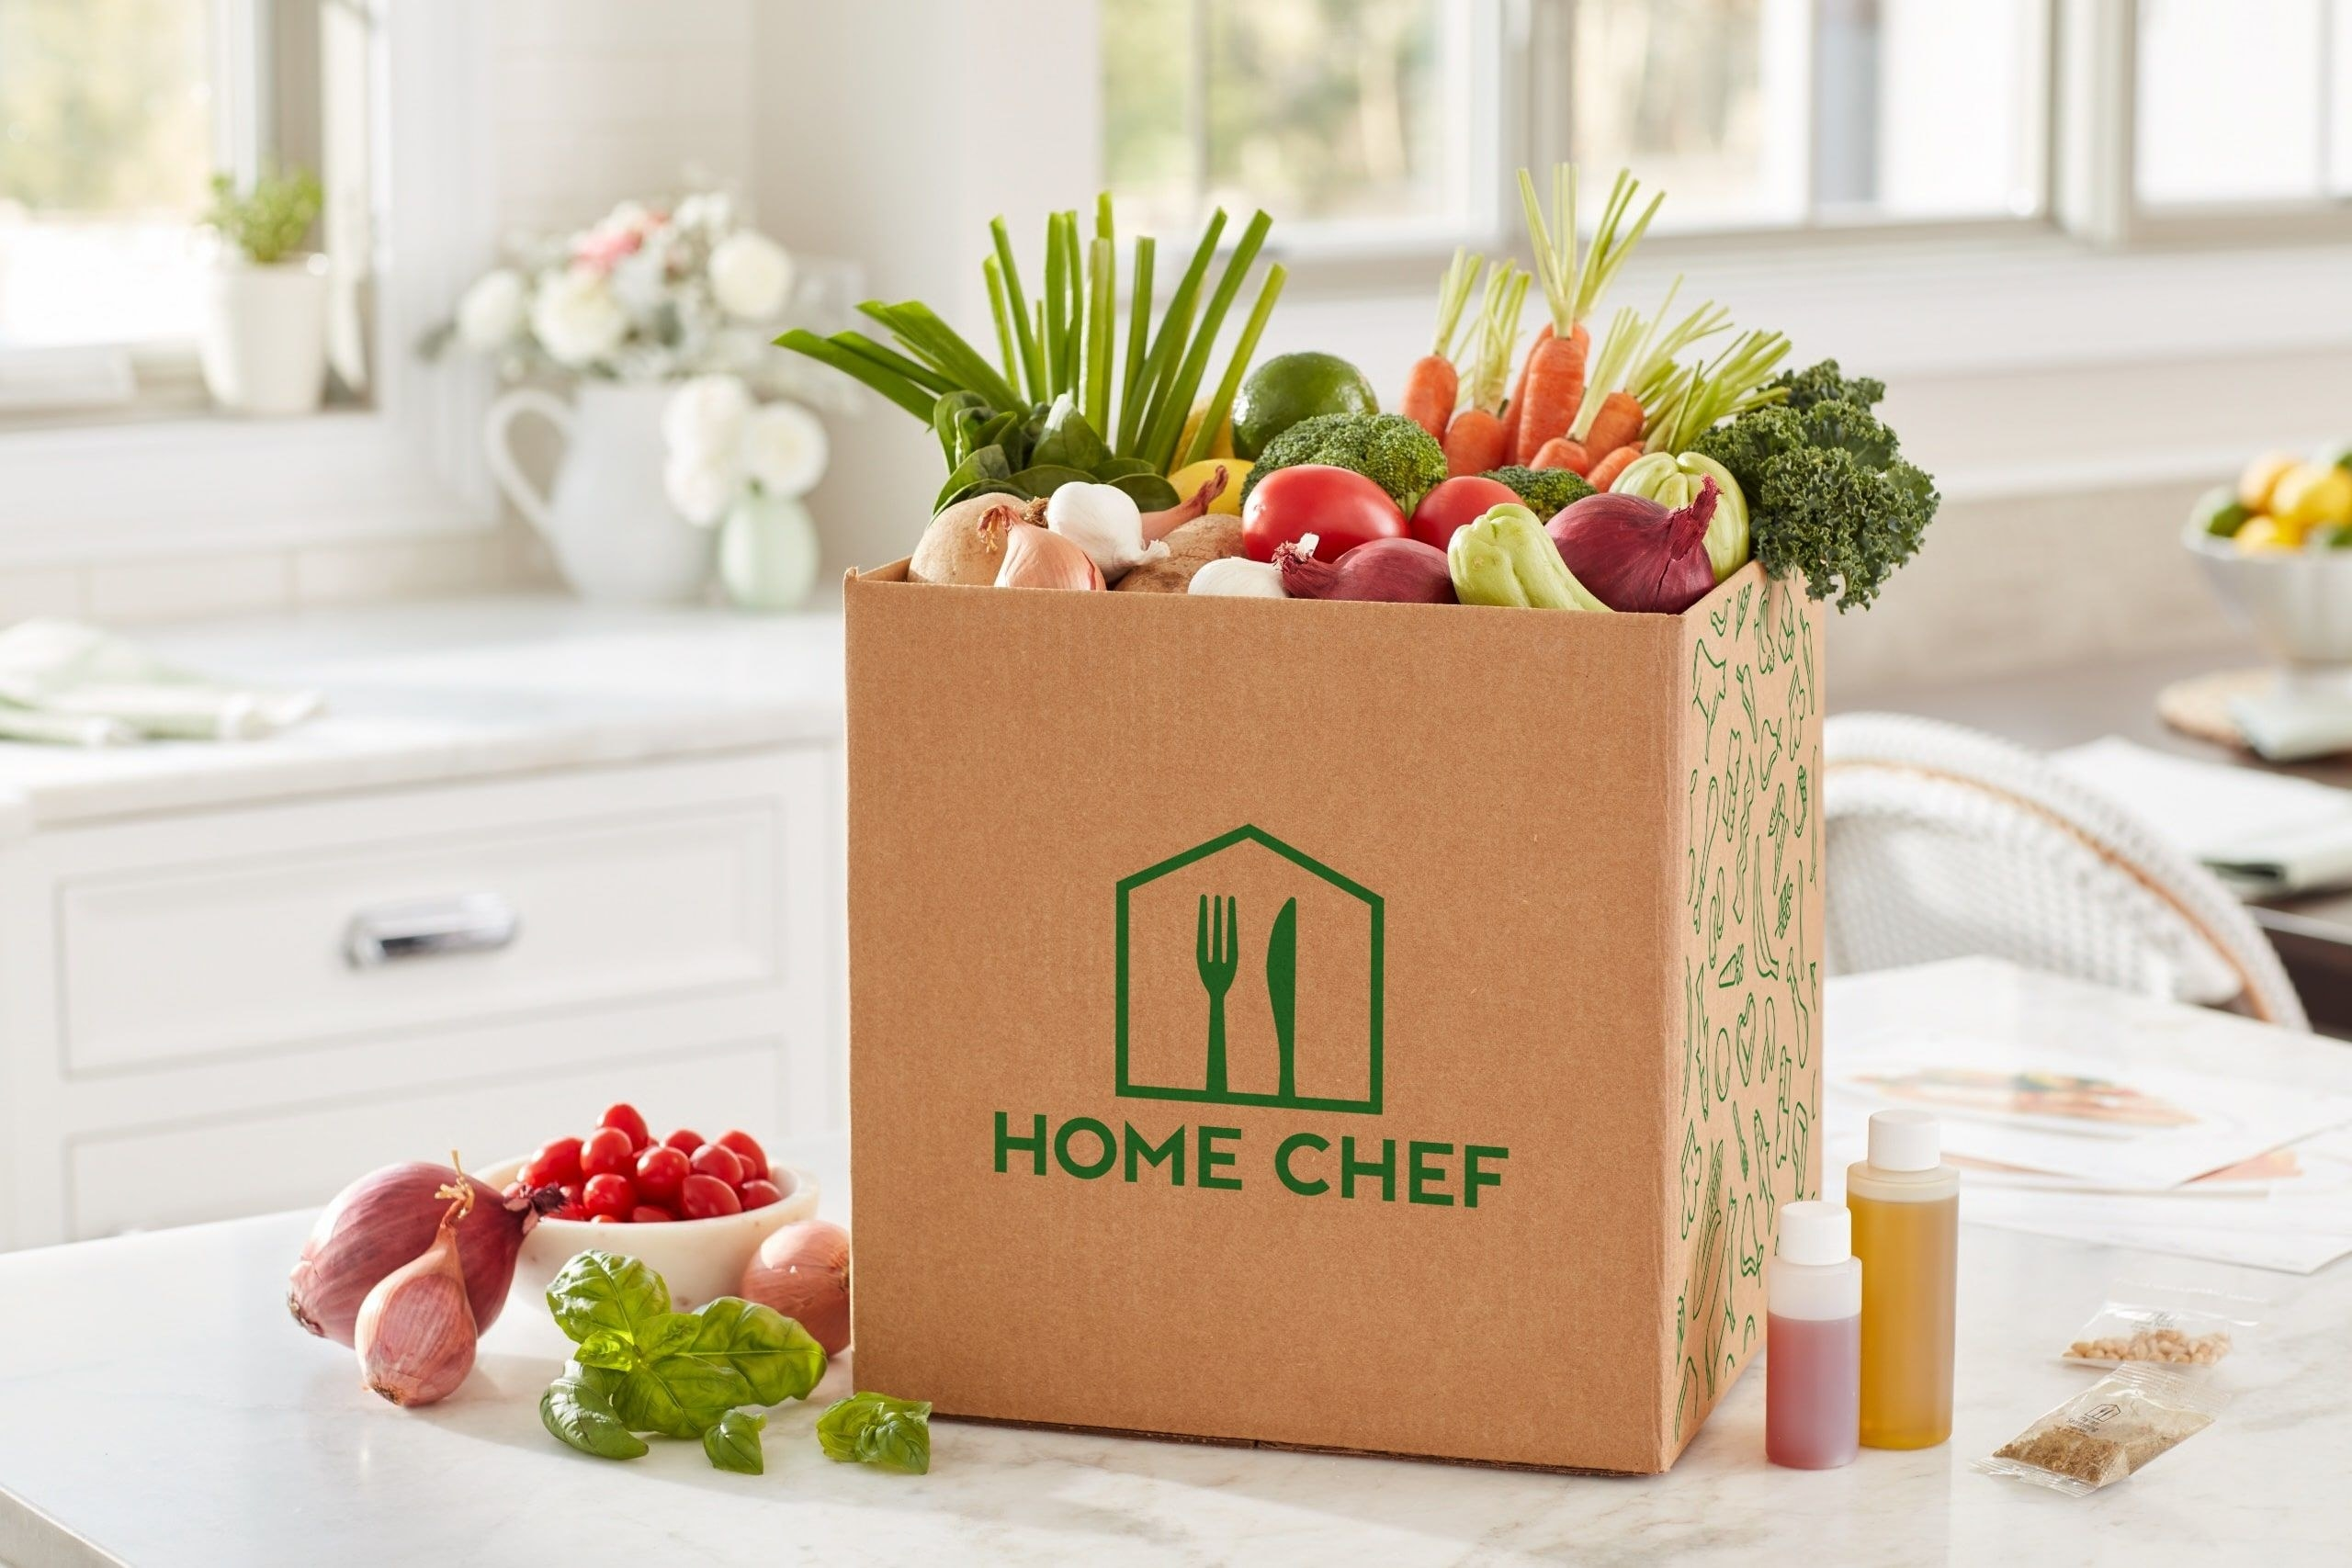 box with home chef on the side filled with veggies